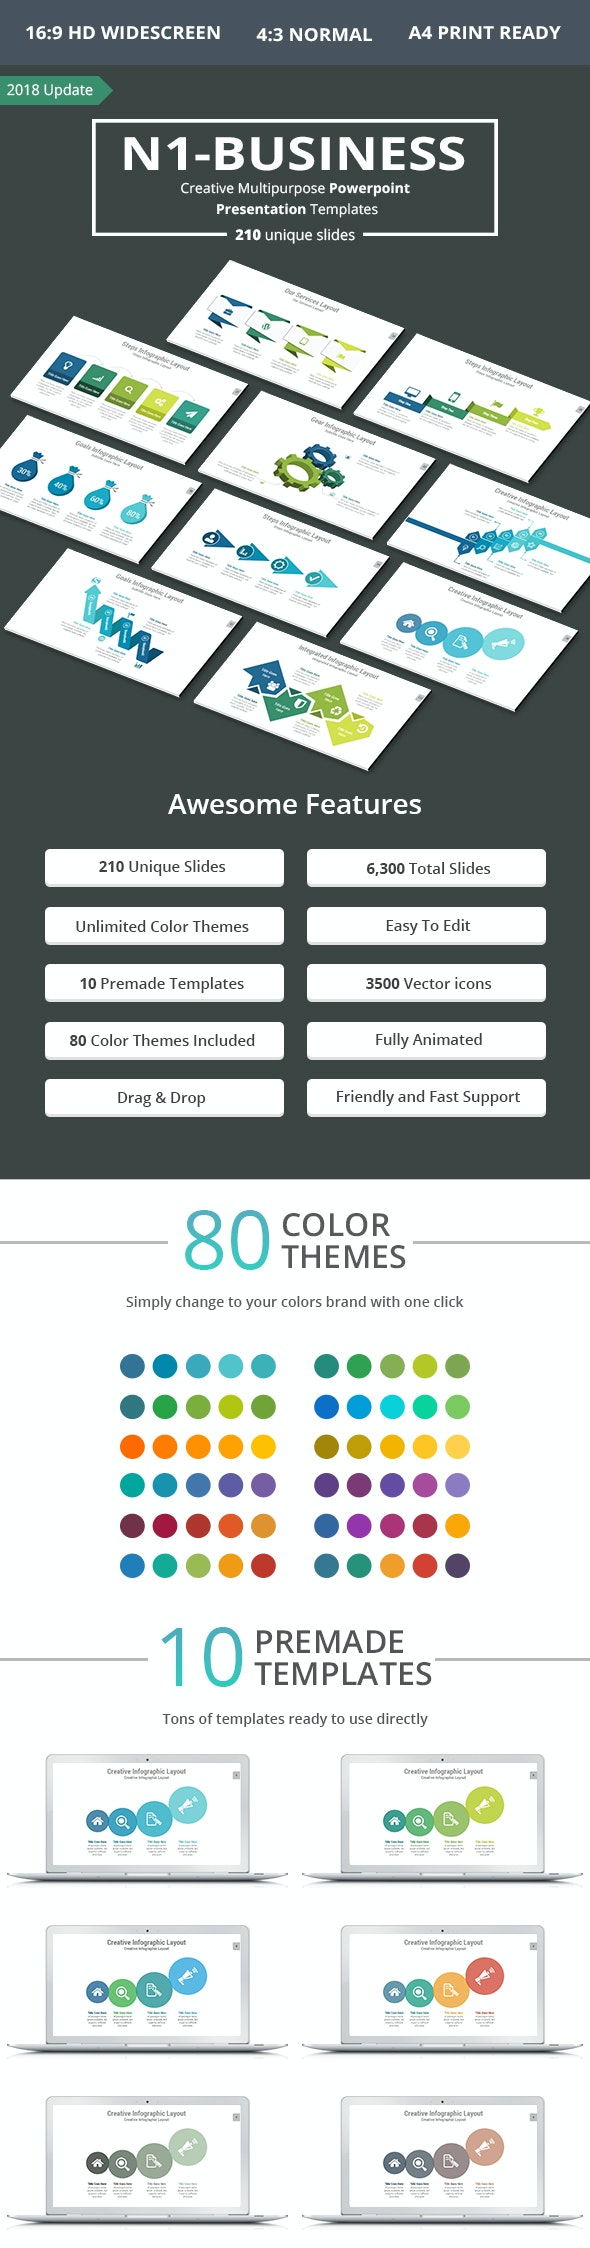 N1 Multipurpose PowerPoint Presentation Template - PowerPoint Templates Presentation Templates